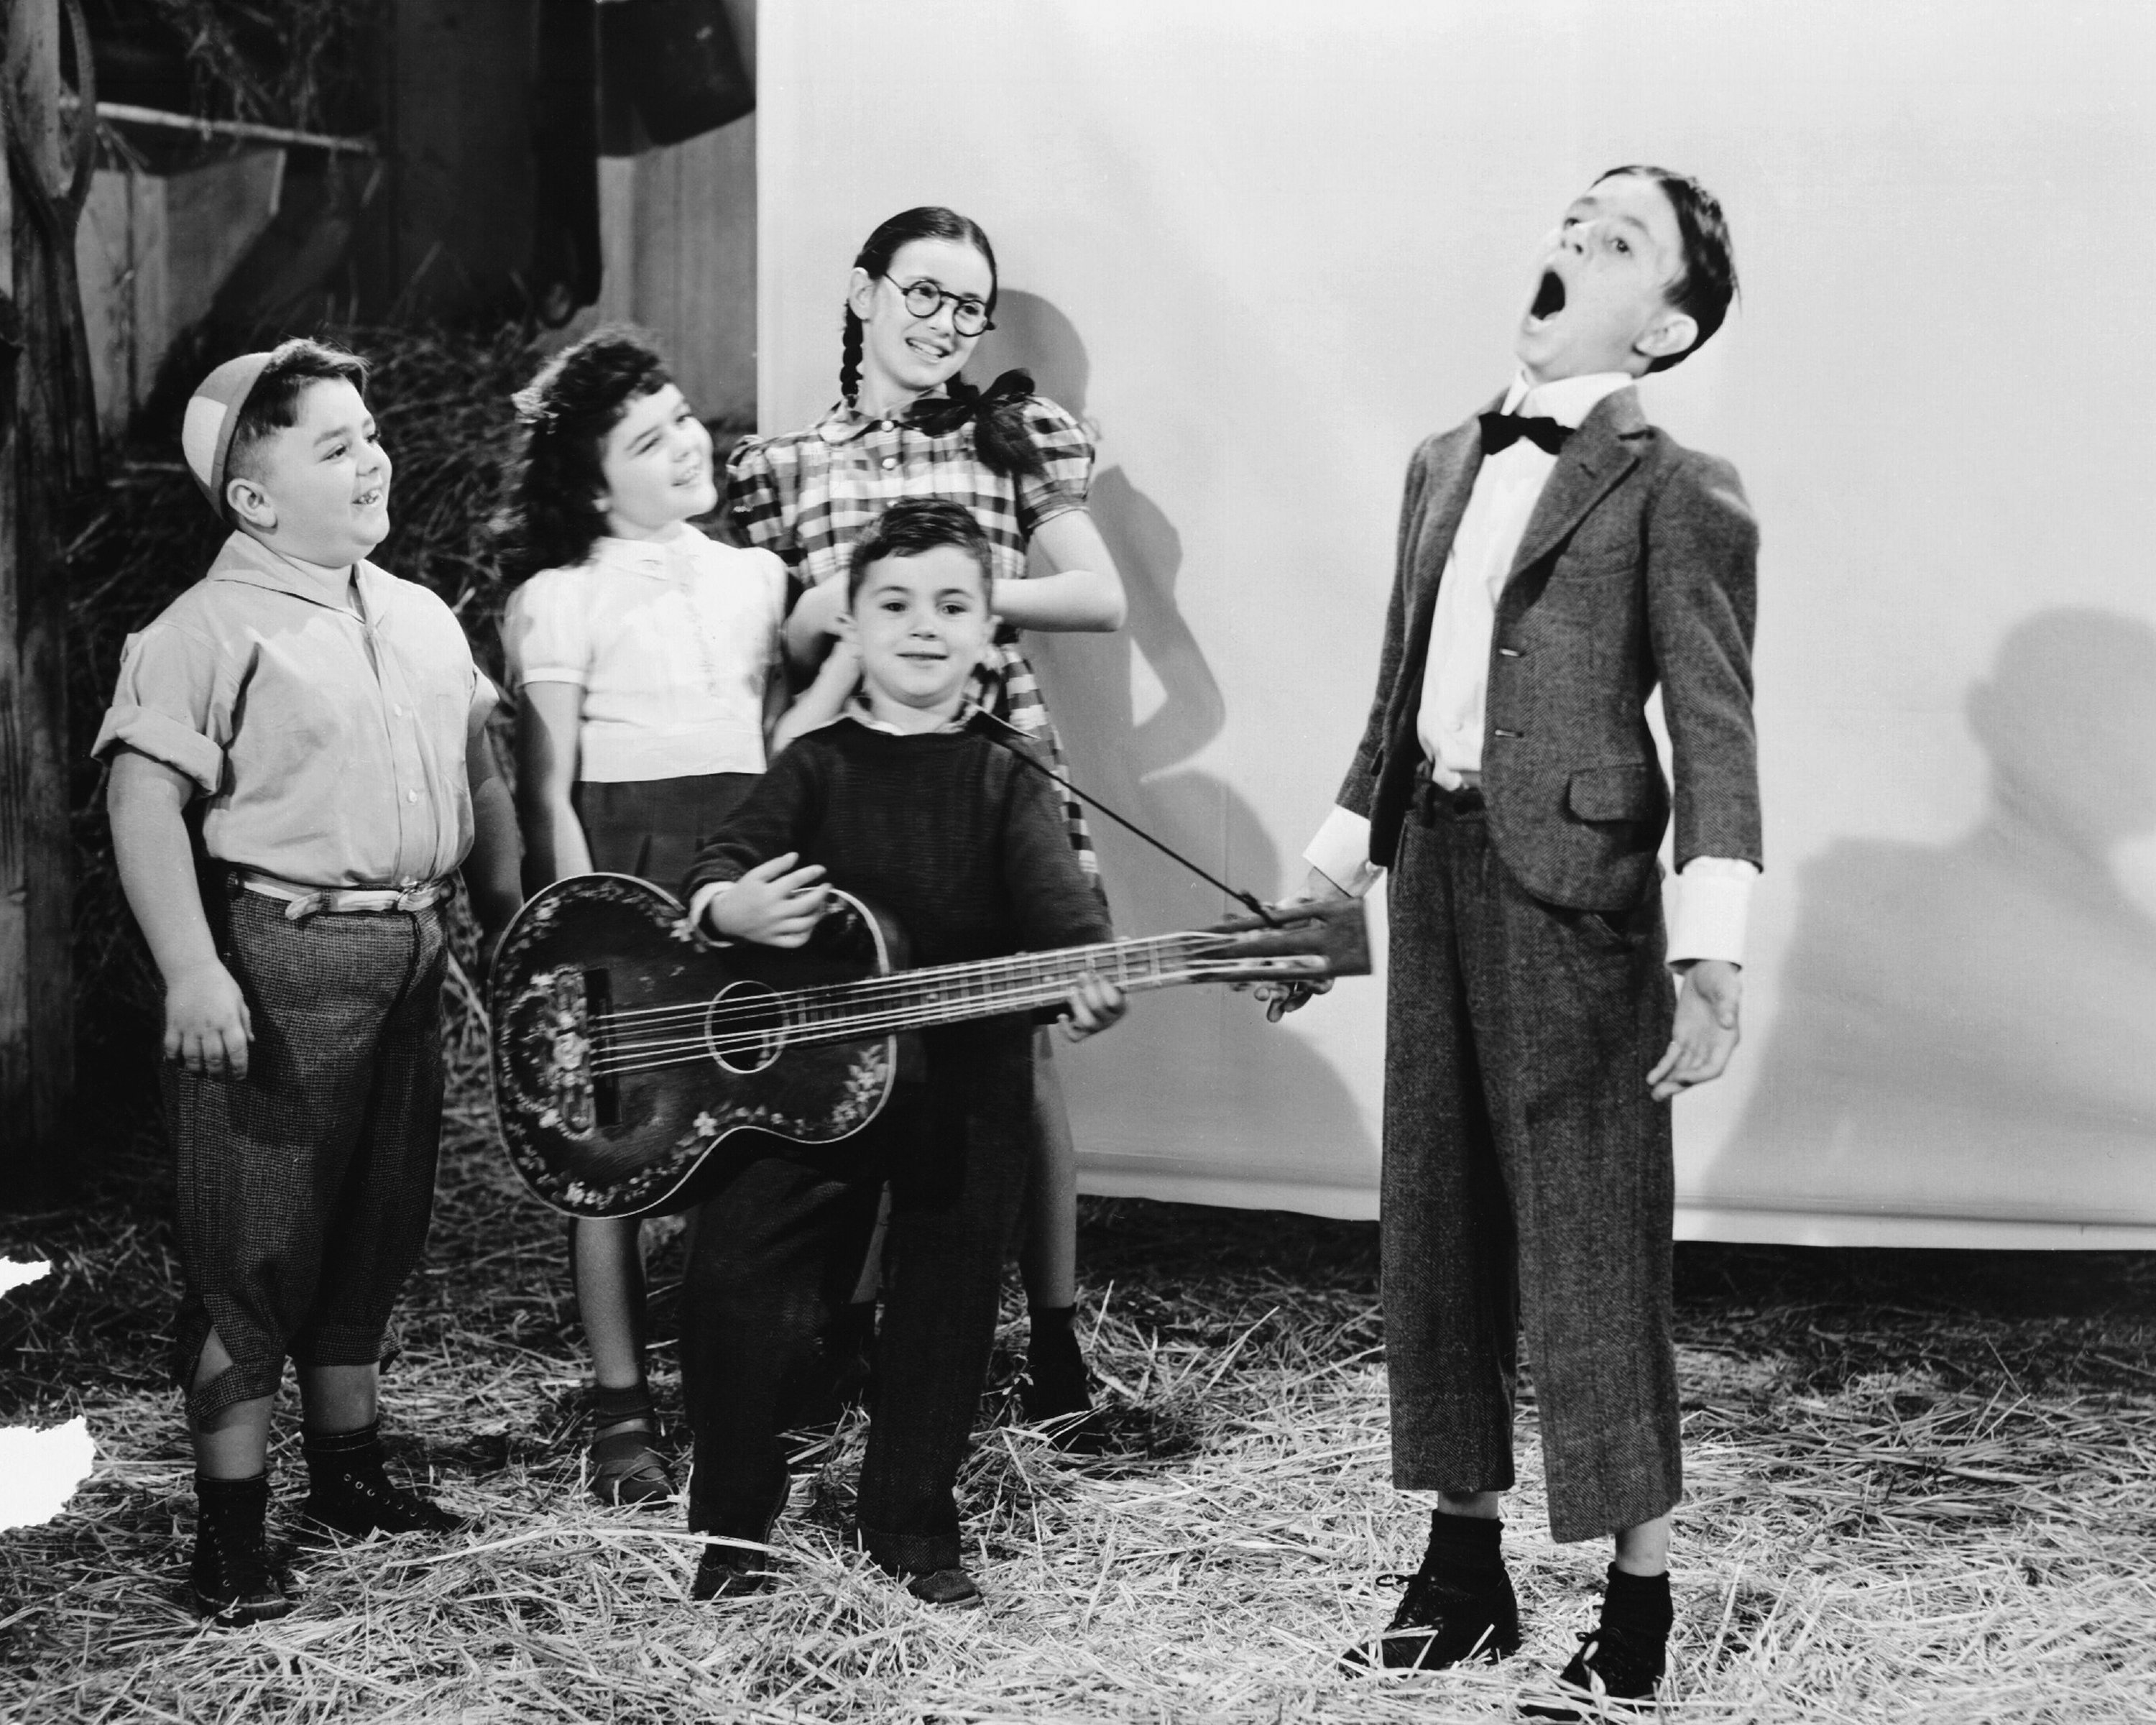 The cast of Our Gang/The Little Rascals singing, circa 1930. | Source: Getty Images